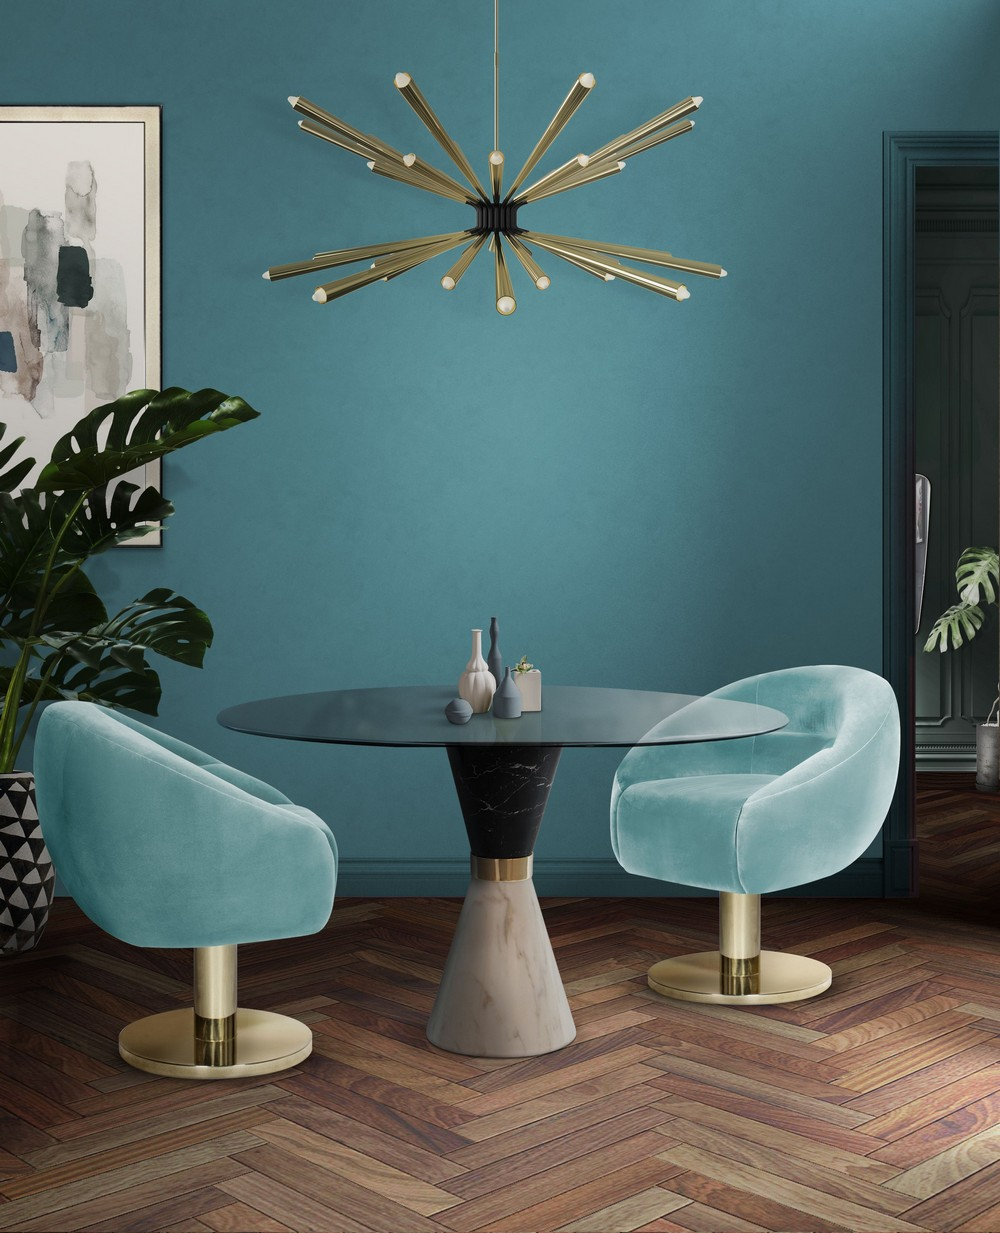 5 Beautiful Dining Chairs To Give A Splash of Color In Your Dining Room dining chairs Beautiful Dining Chairs To Give A Splash of Color In Your Dining Room JSM G  w